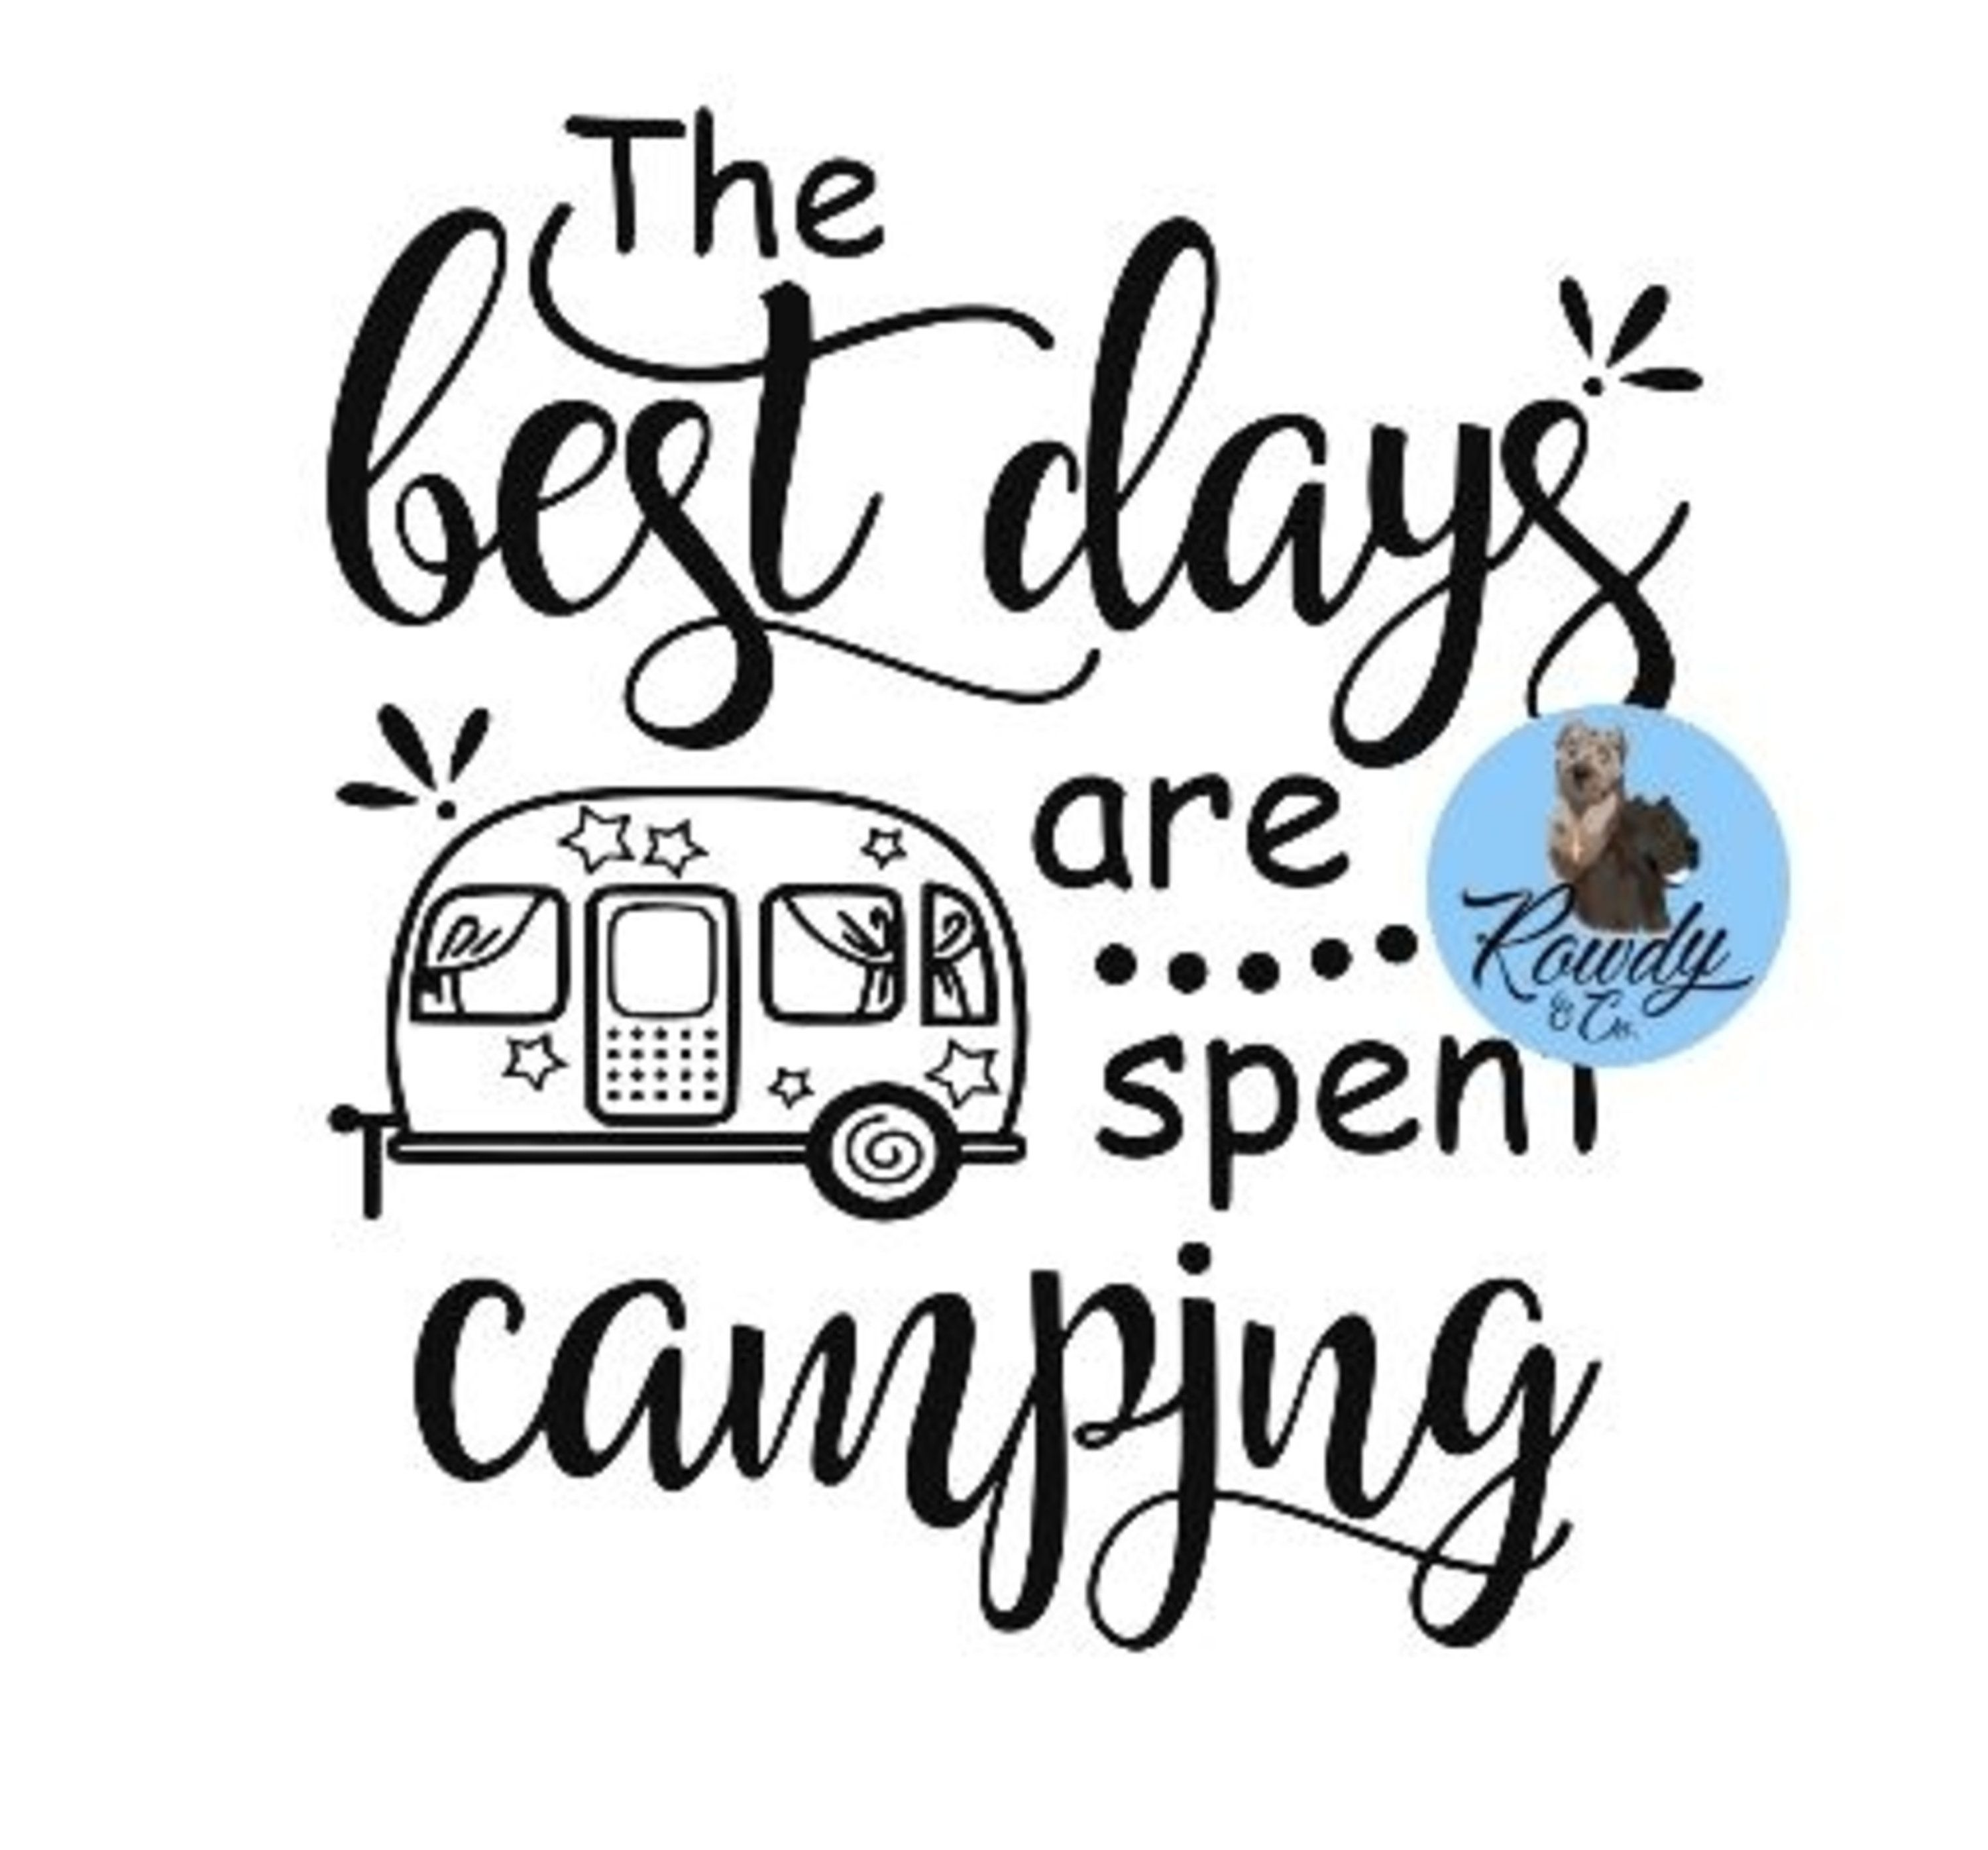 Camping svg file, Camping svg, Lady campers svg, Camping sign svg, Camping, Camper svg, The best da